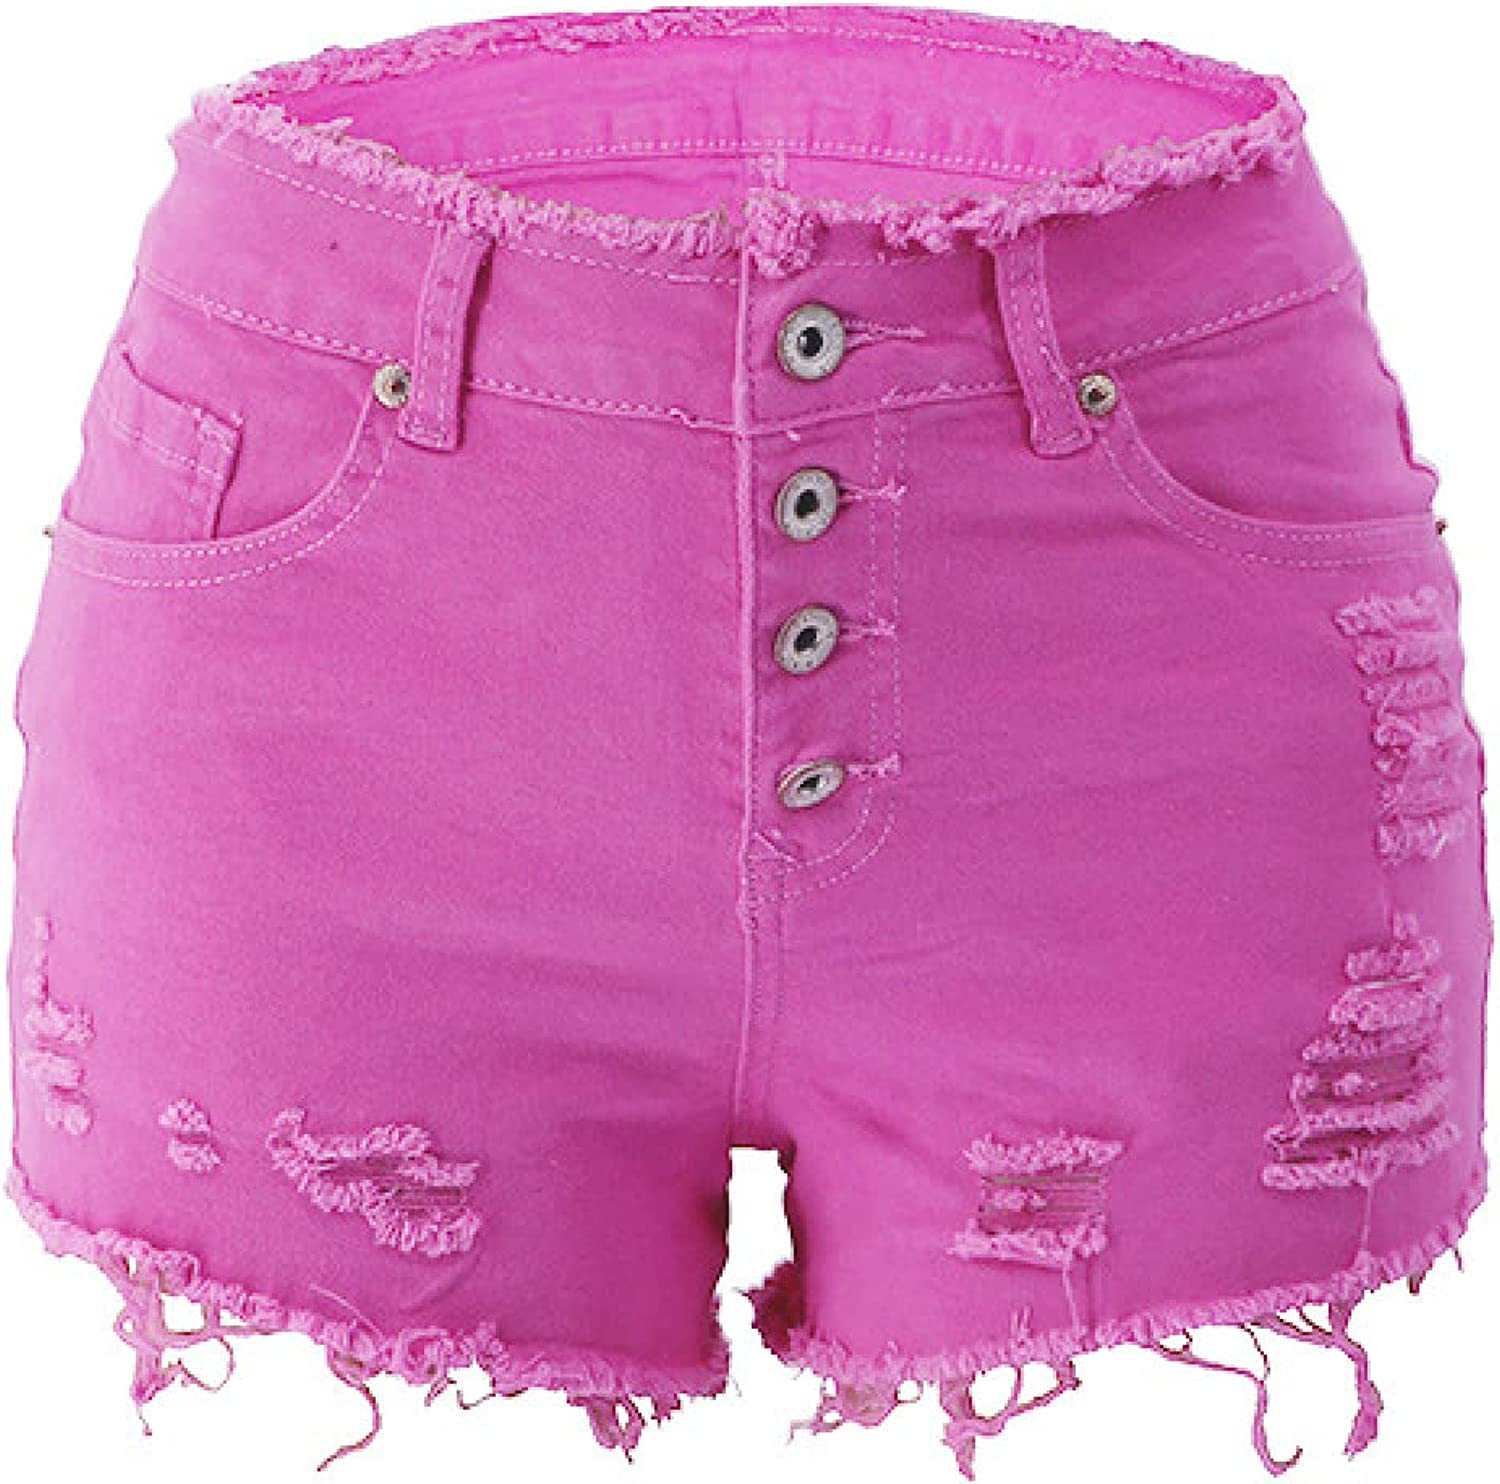 Women's Washed Solid Color Denim Shorts Fashion Ripped Trend All-Match